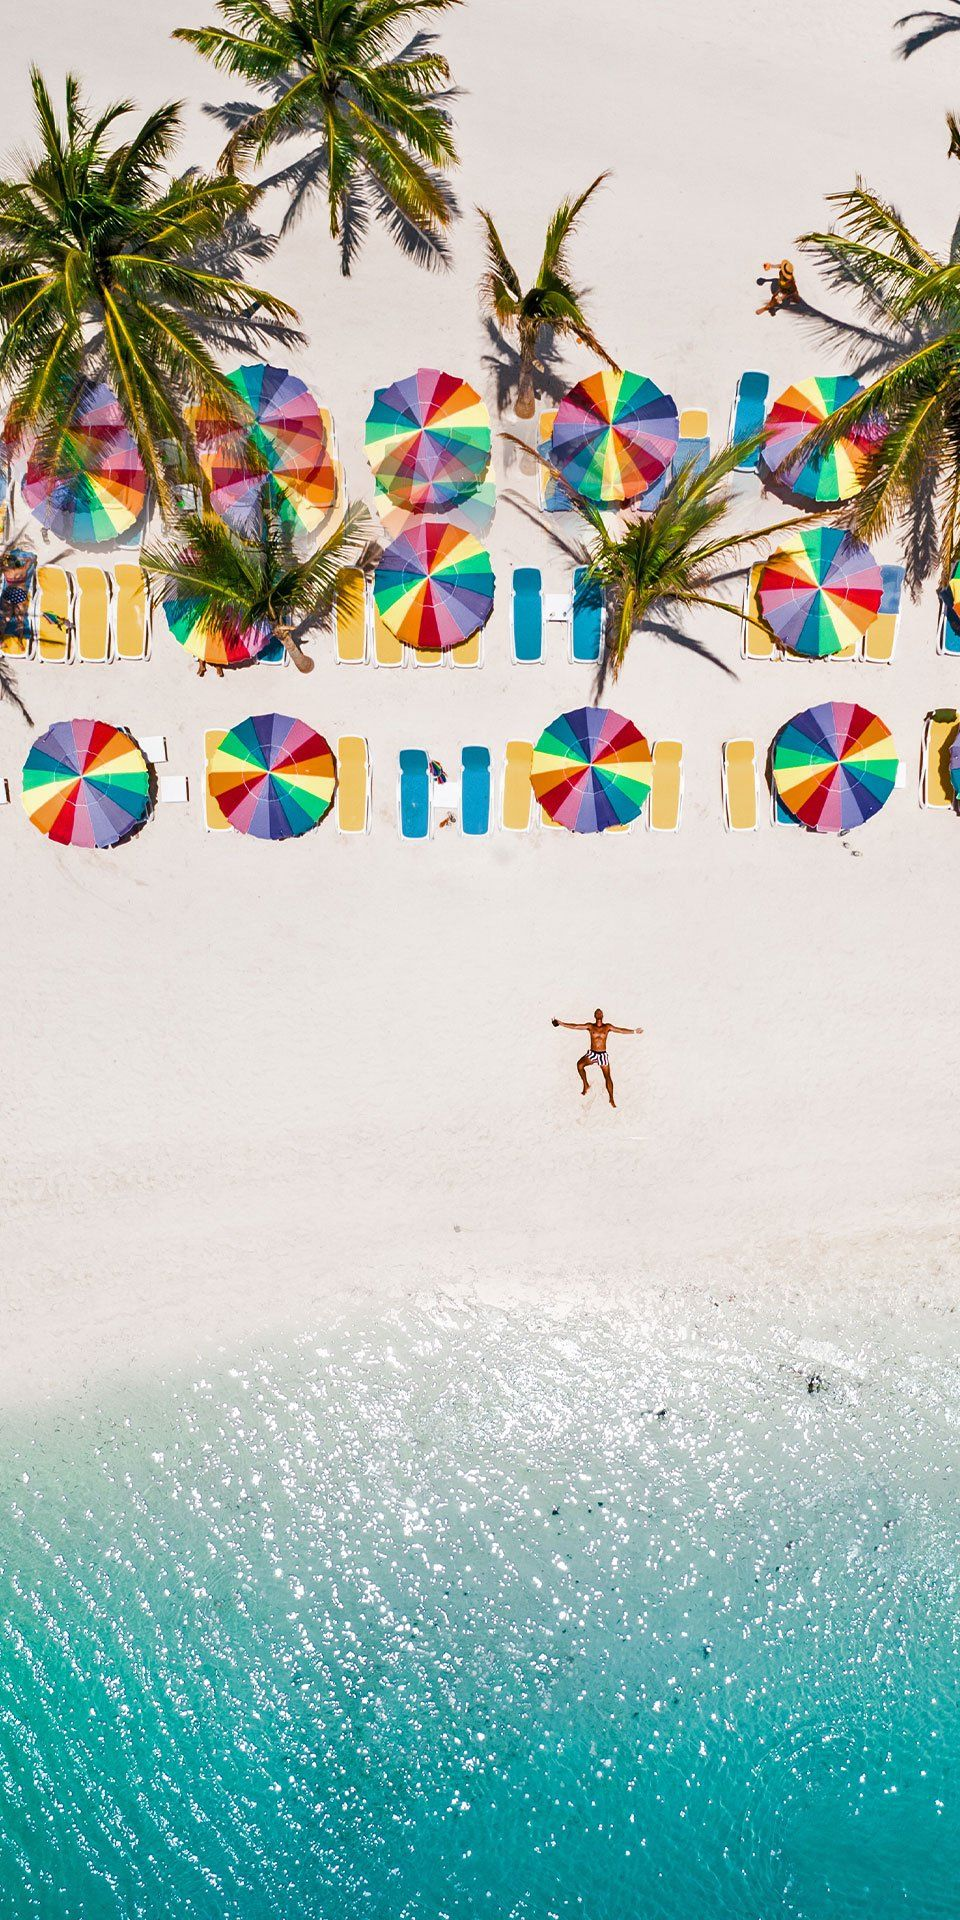 Cococay Bahamas This Is The Beach Day You Ve Been Dreaming About Crystal Clear Tropical Waters A Best Cruise Lines Royal Caribbean Cruise Caribbean Cruise